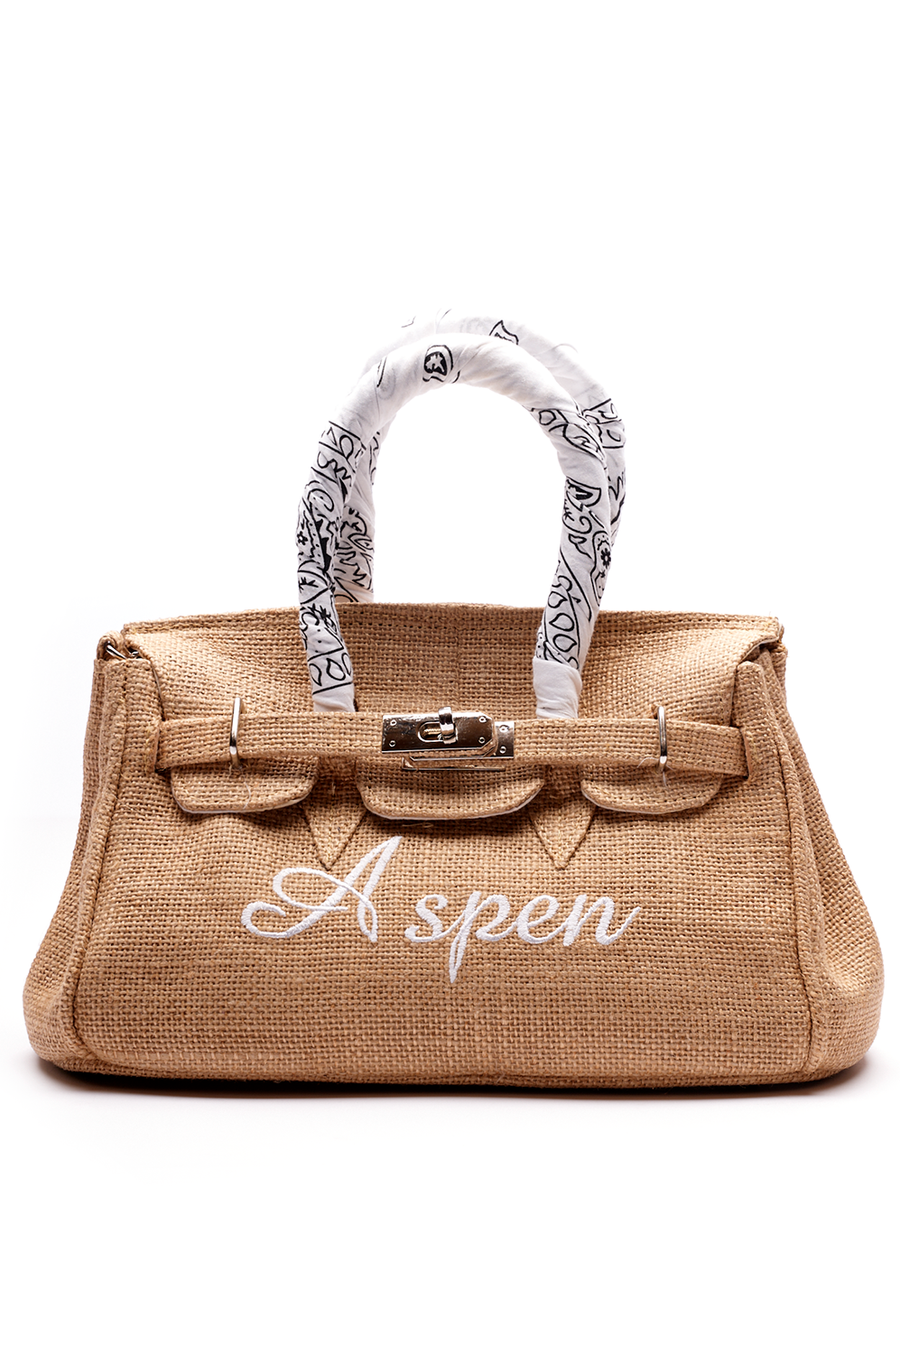 Jute with White Bandana Handle Mini Aspen Inspired Bag